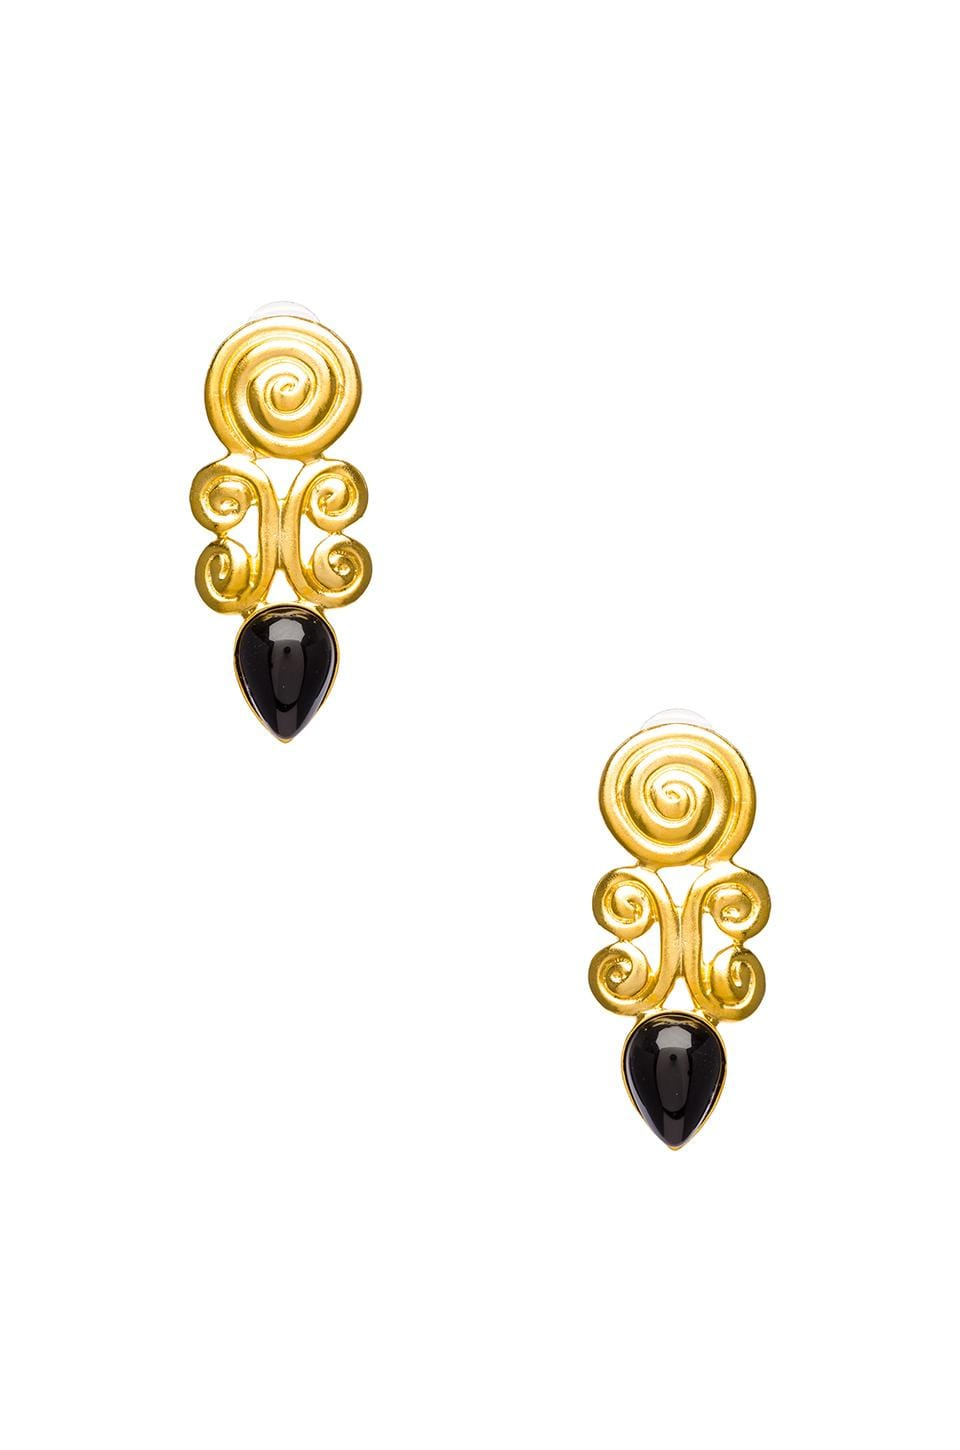 Kenneth Jay Lane Satin Gold Swirl Teardrop Pierced Earring in Gold